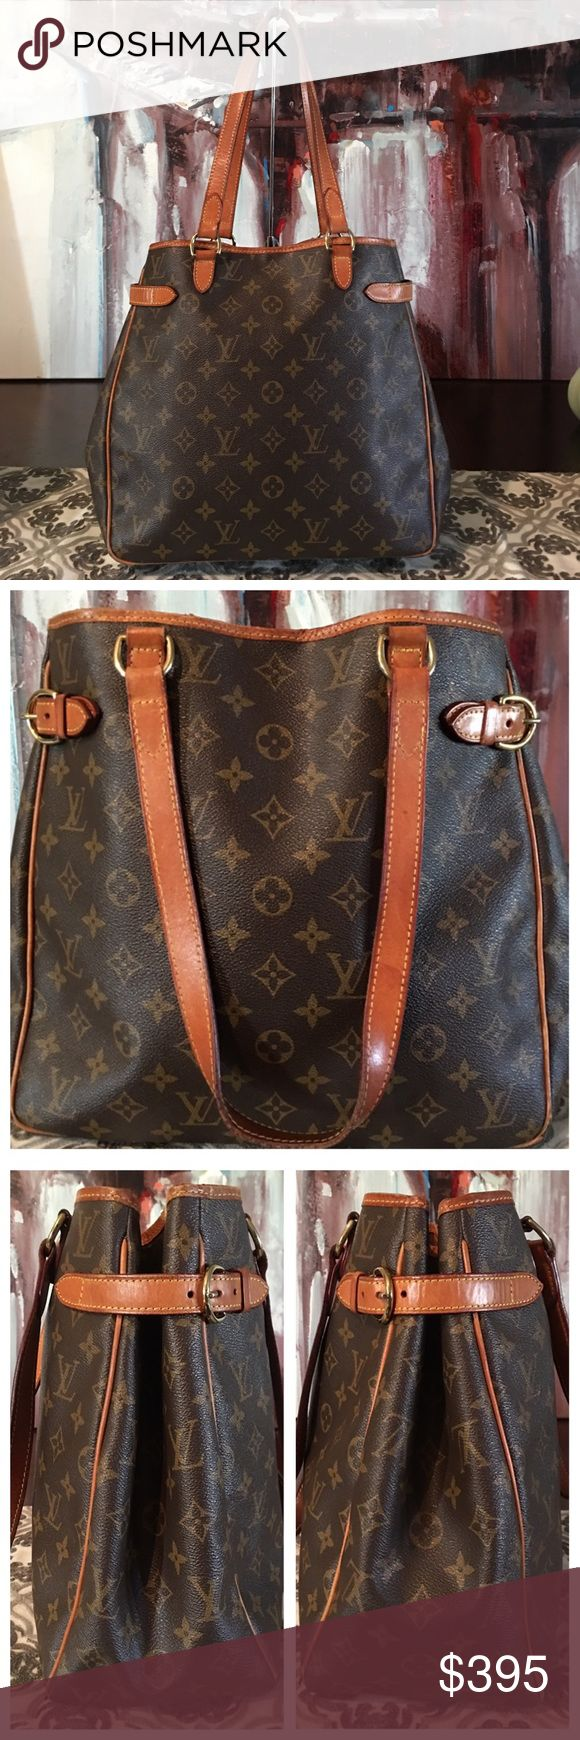 """AUTHENTIC LOUIS VUITTON BATIGNOLLES 100% Authentic Louis Vuitton Batignolles Shoulder Tote Bag. Beautiful. Classy. Roomy. Monogram canvas has no scratches or tears. Corners are rubbed. Vachetta leather shows normal wear and has turned into a caramel patina. Straps in good shape no cracks 👍🏻 Hardware has a golden tone. Zipper works properly. Inside and pockets are in good condition. W9.25""""xH8.66""""xD5.52"""" Straps 13.40"""" No trades. Will go fast.... Louis Vuitton Bags Shoulder Bags"""